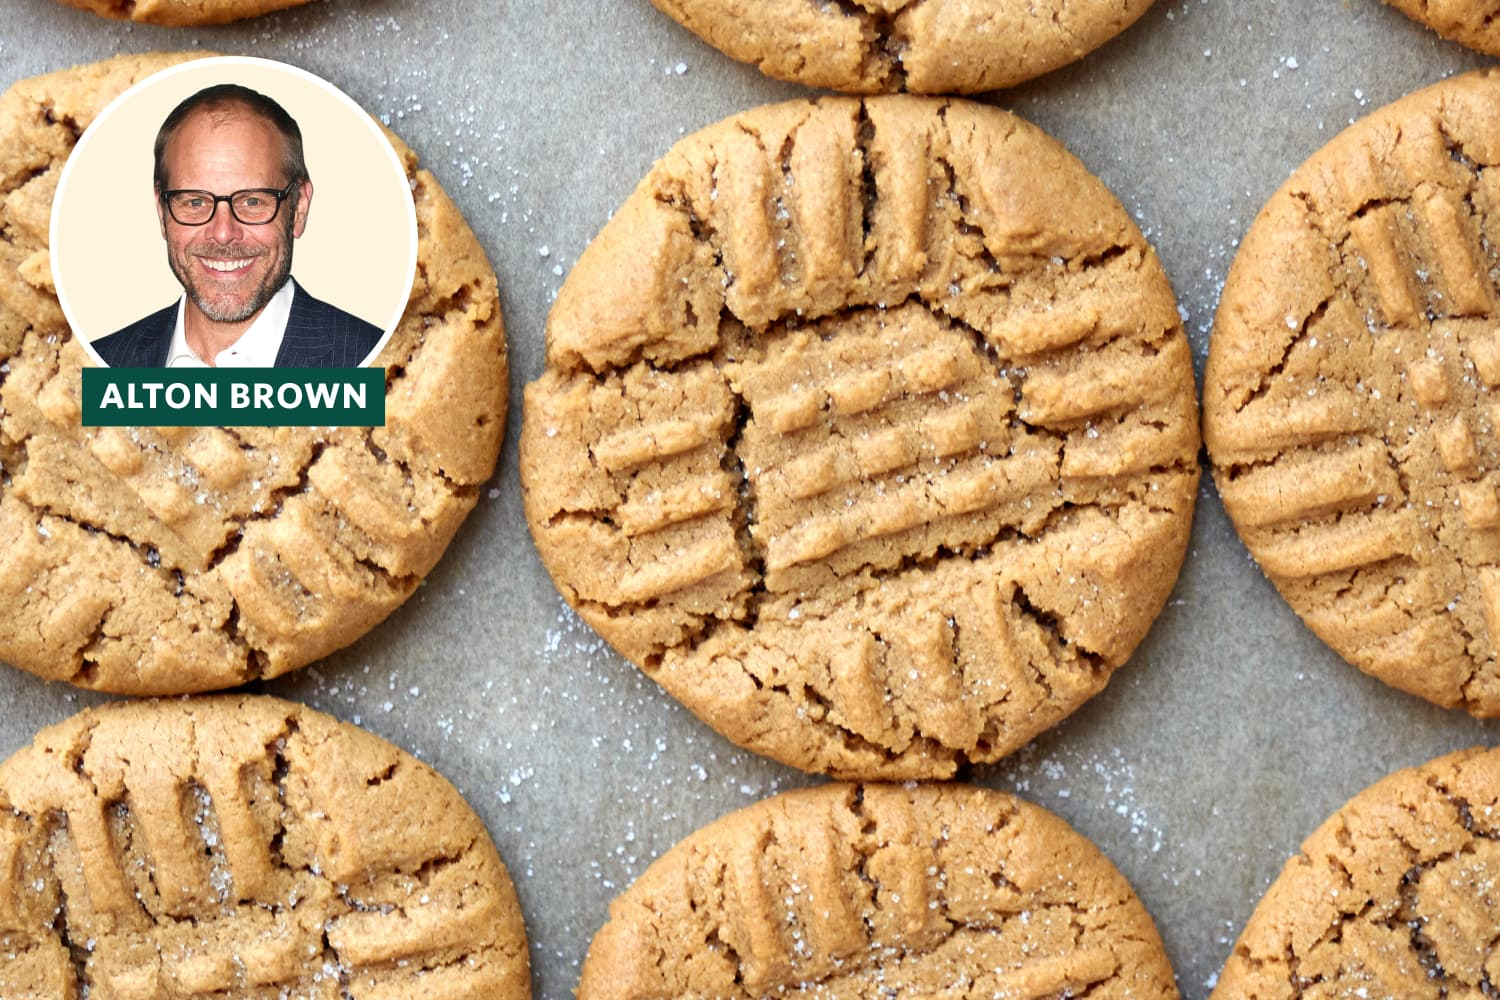 Alton Brown's Peanut Butter Cookies Are Shockingly Simple Yet Seriously Delicious